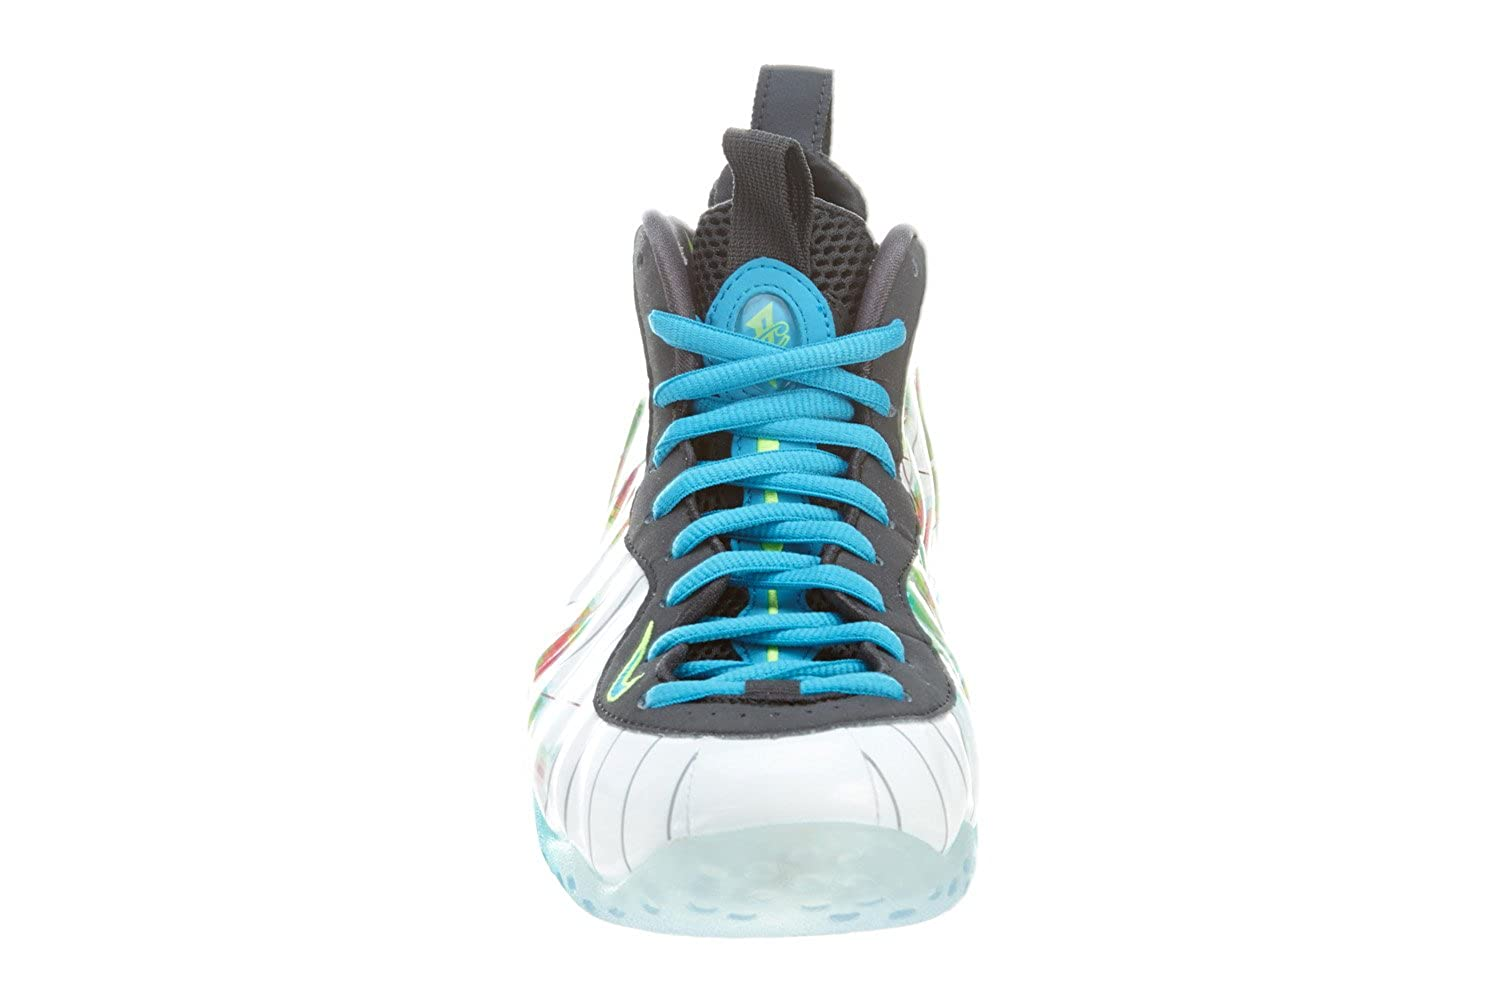 brand new 8283f dd0d8 wholesale amazon nike air foamposite one premium weatherman mens basketball  shoes white current blue flash lime